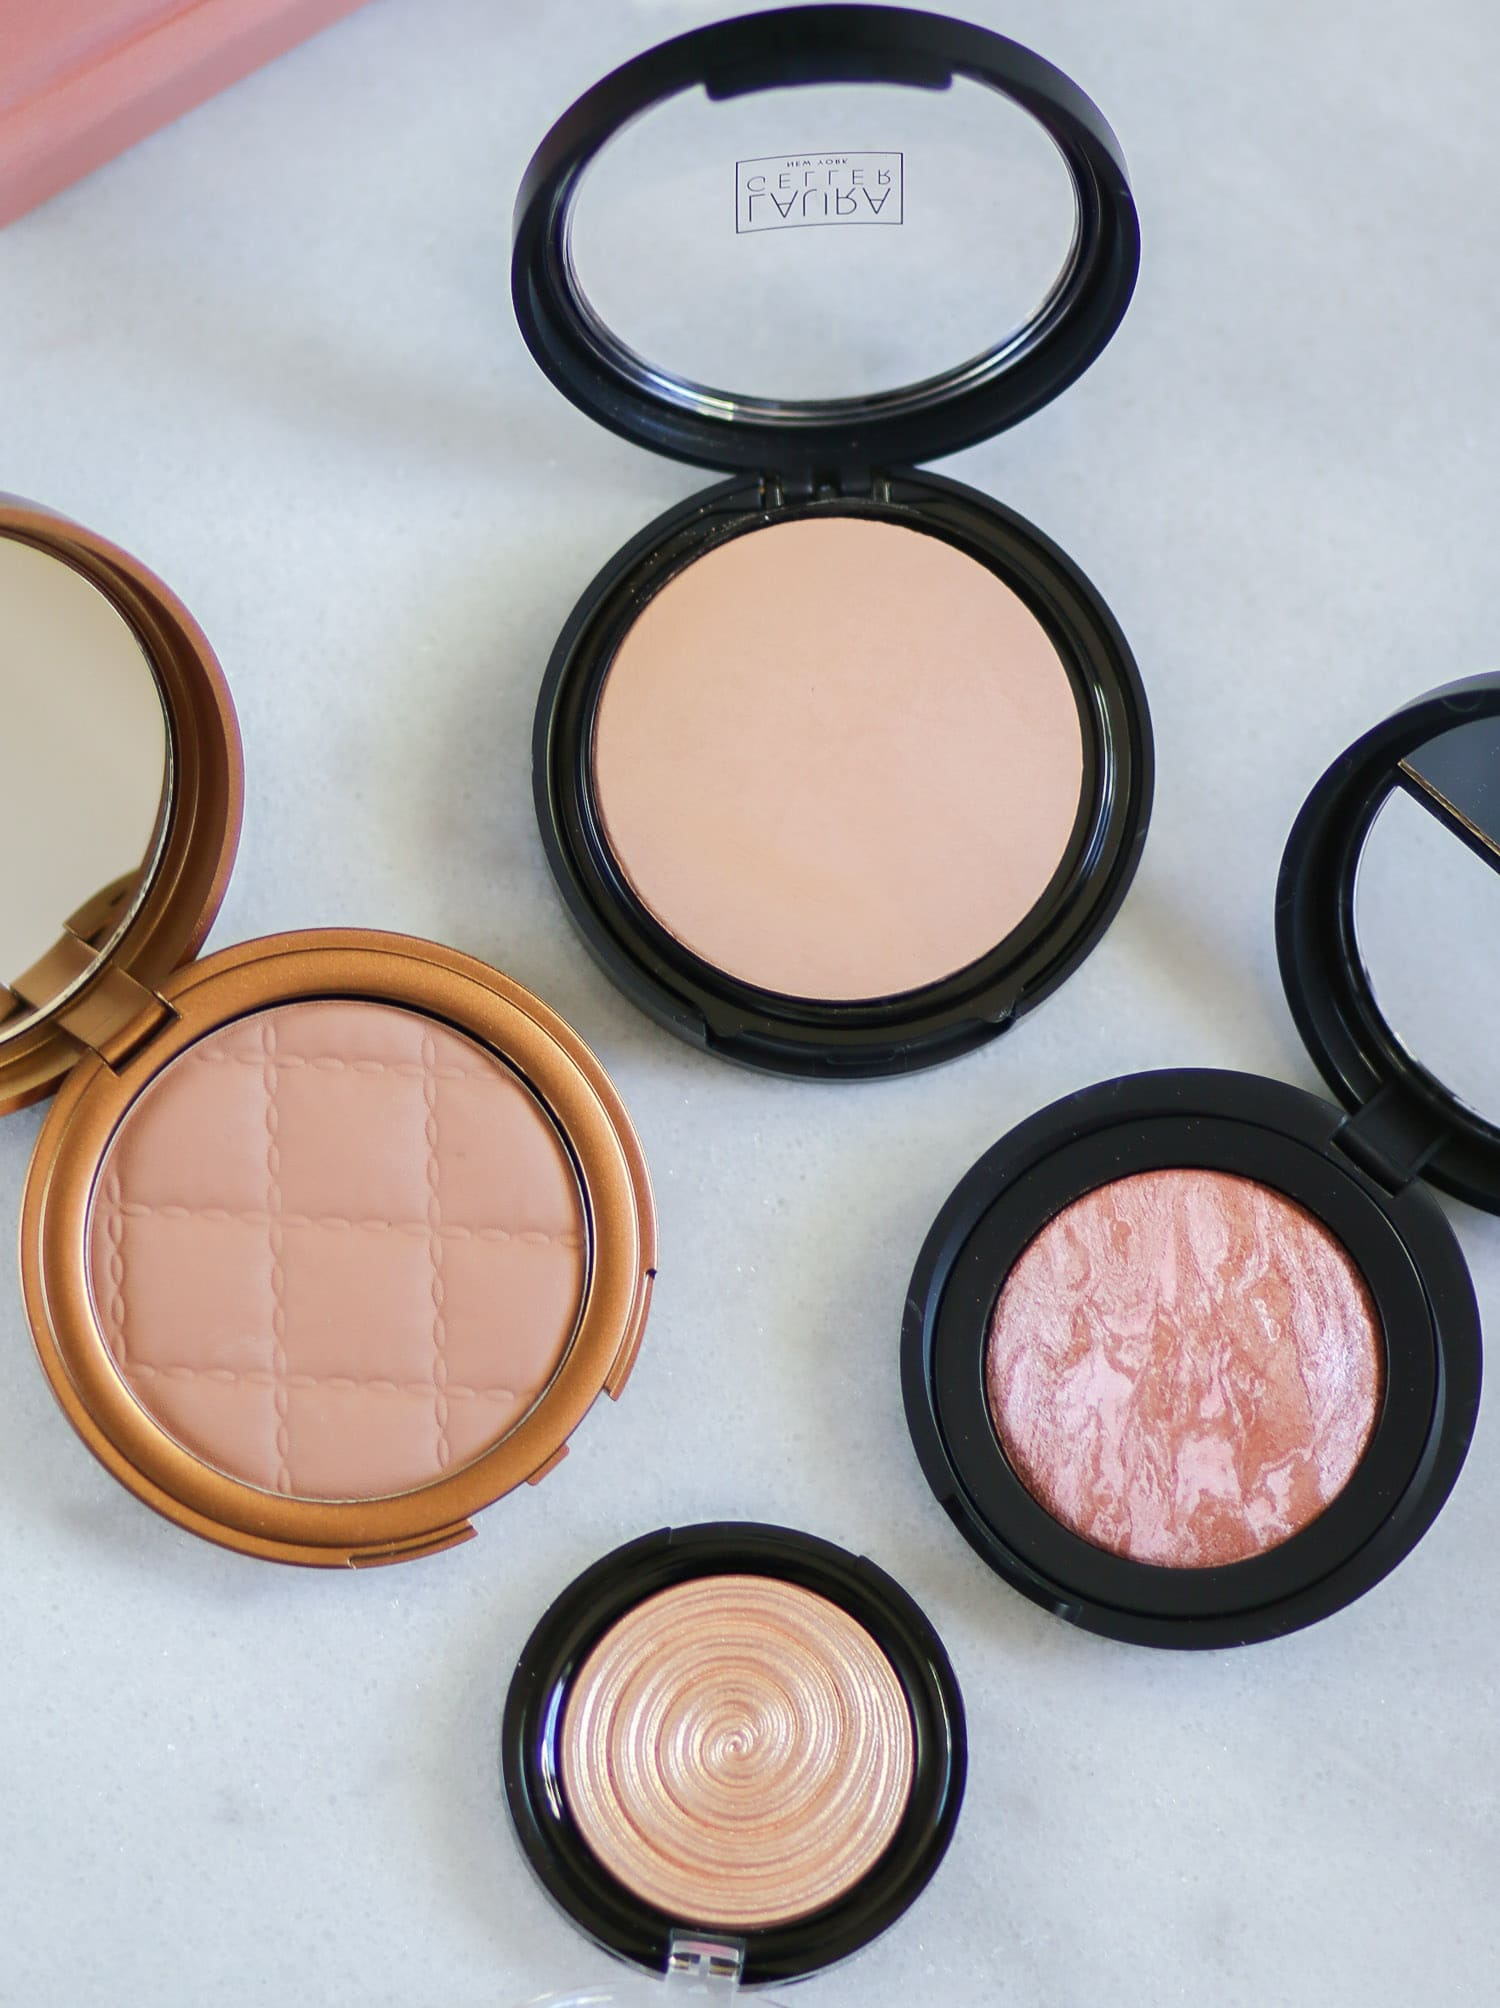 These Laura Geller face products are the bomb.com! The Beach Matte Baked Hydrating Bronzer is such a great matte bronzer for contouring, and the Laura Geller Baked Gelato Swirl Illuminator in Gilded Honey is heavenly. I also love the Baked Blush-n-Brighten in Honeysuckle for a bronze & pink summer glow, and the Double Take Baked Versatile Powder Foundation is incredible. Great coverage without a powdery finish! Click through to see a full review from blogger Ashley Brooke! @laurageller